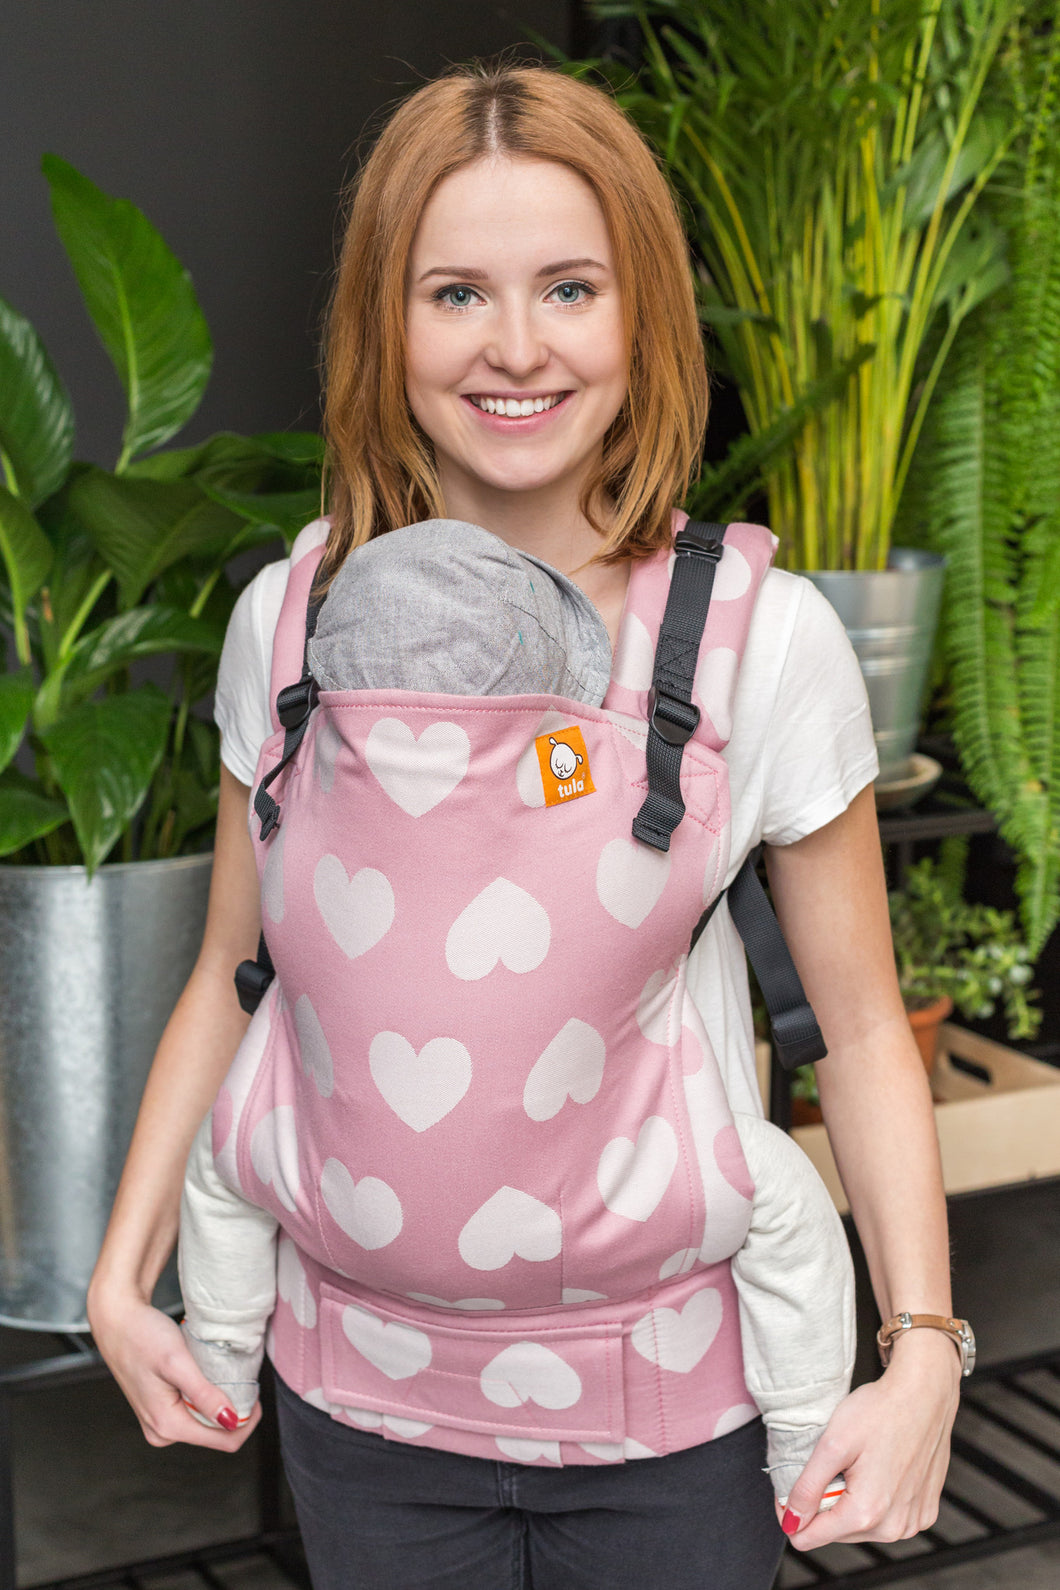 Full Toddler Wrap Conversion Carrier - Love Bubblegum - Baby Tula